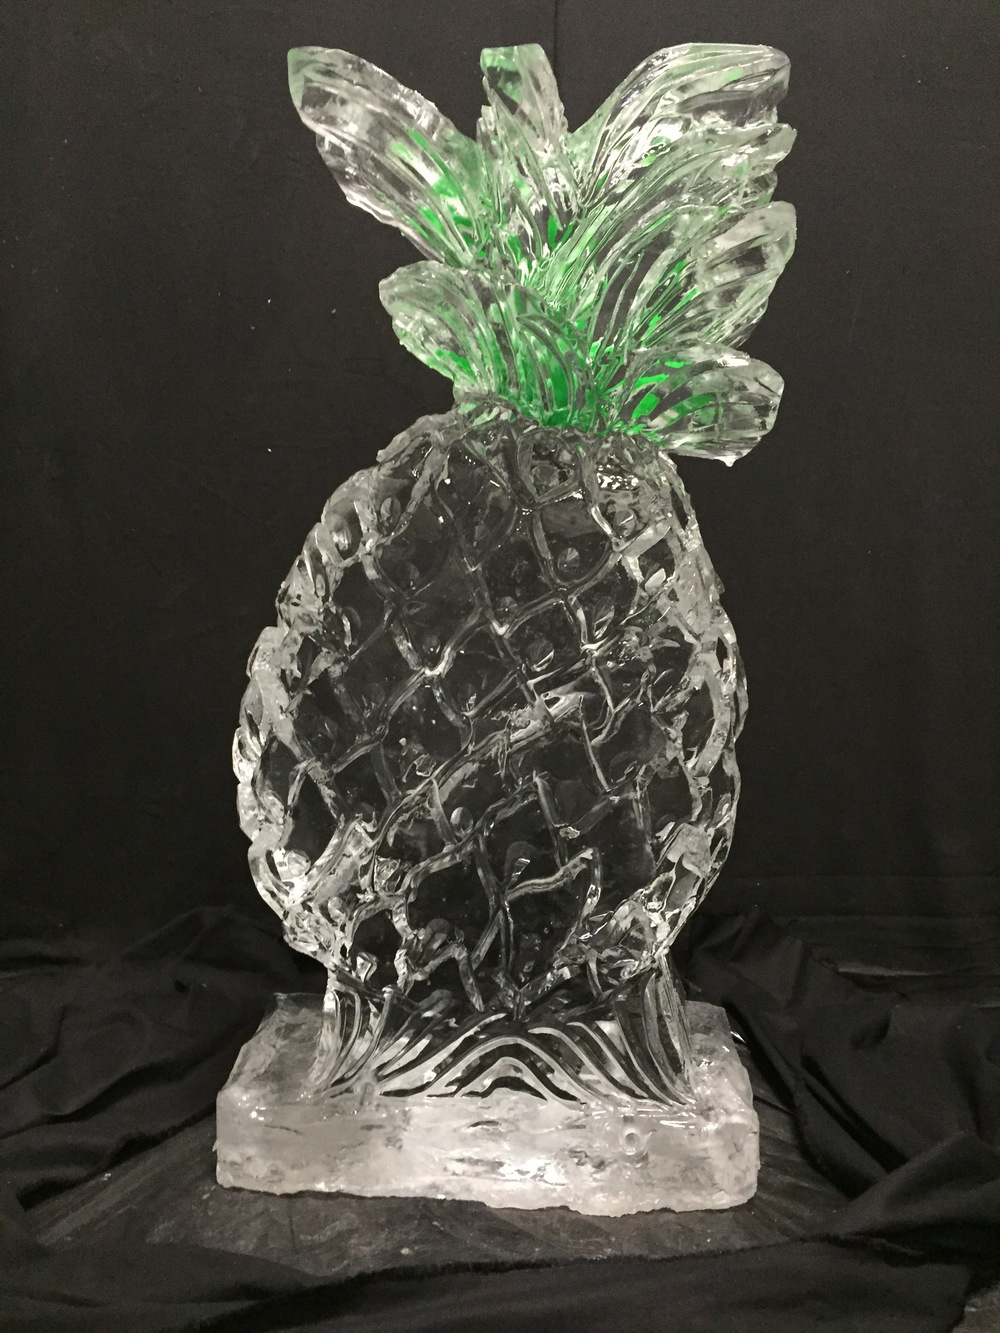 Ice Luge_Pineapple.jpg